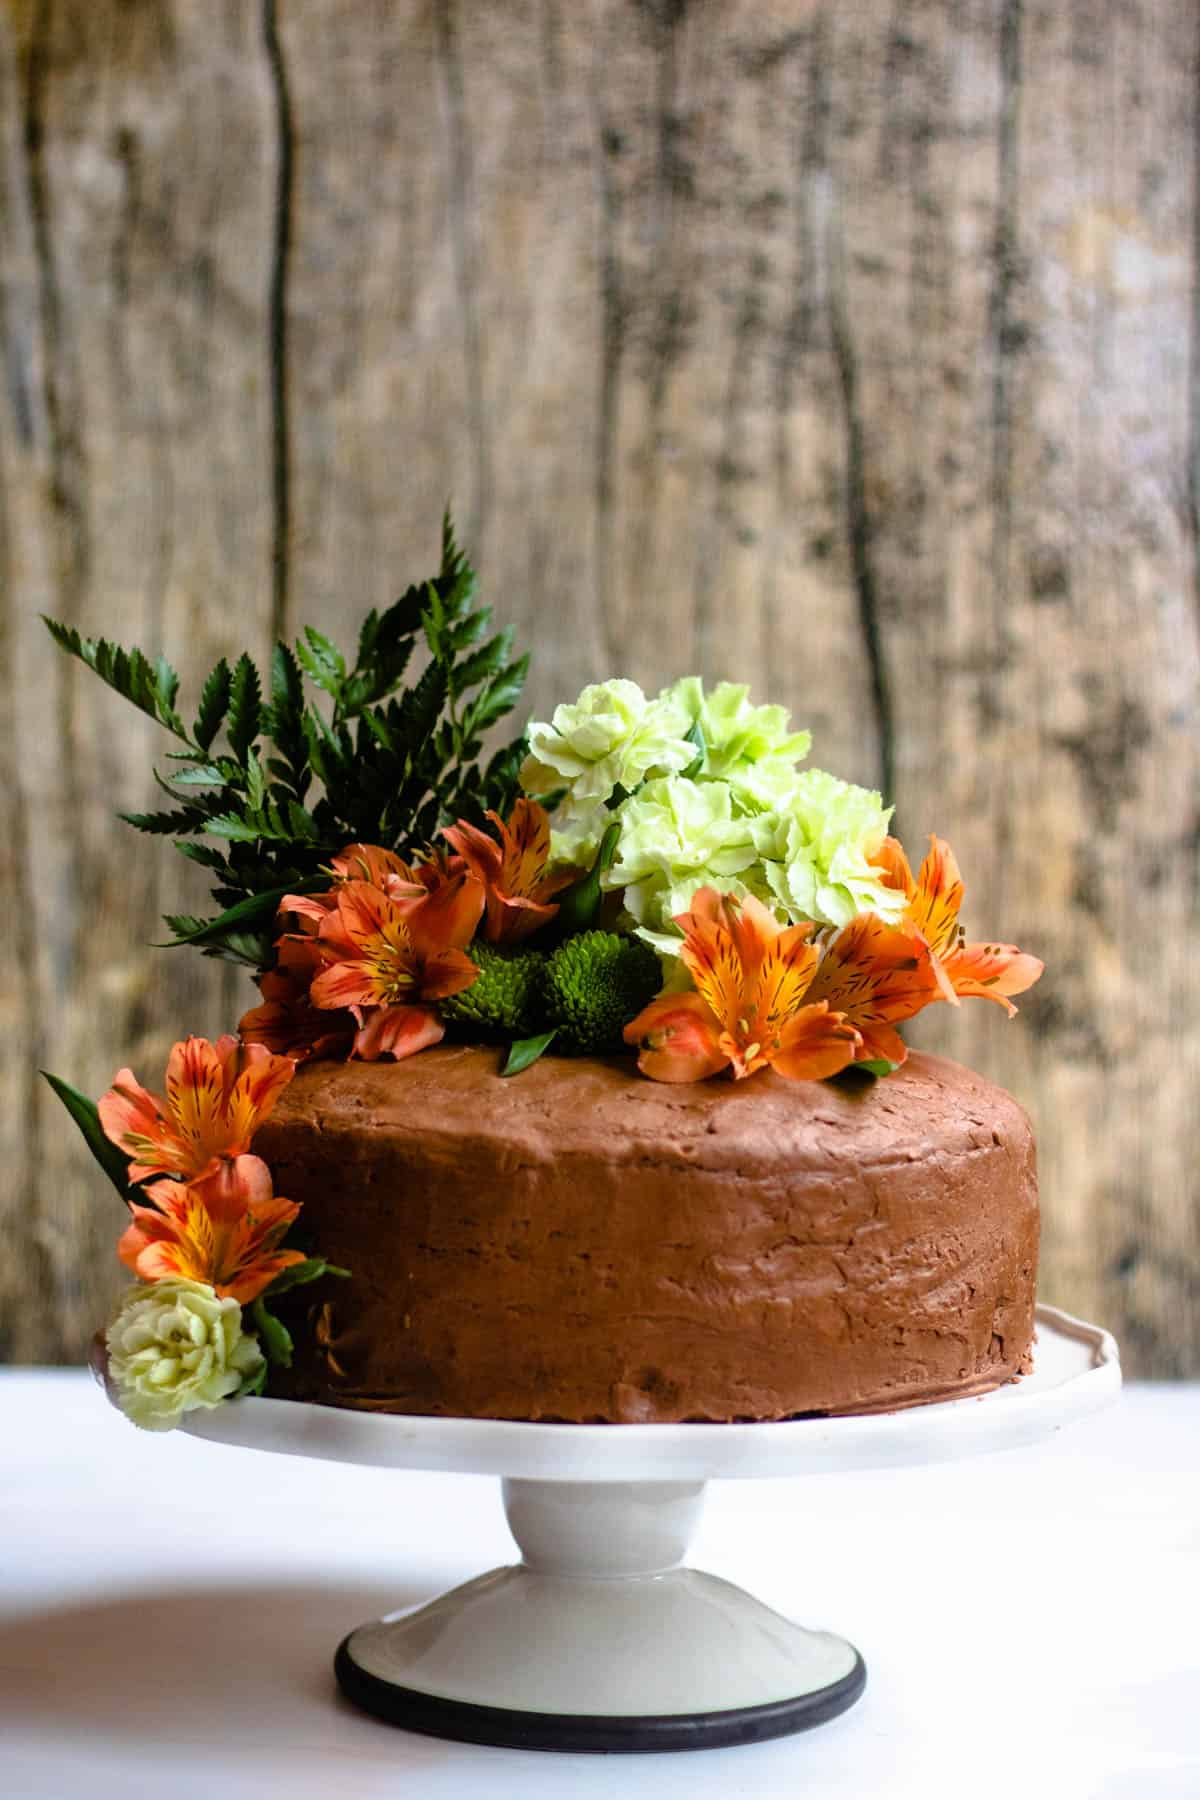 chocolate cake on a cake stand with lowers around it